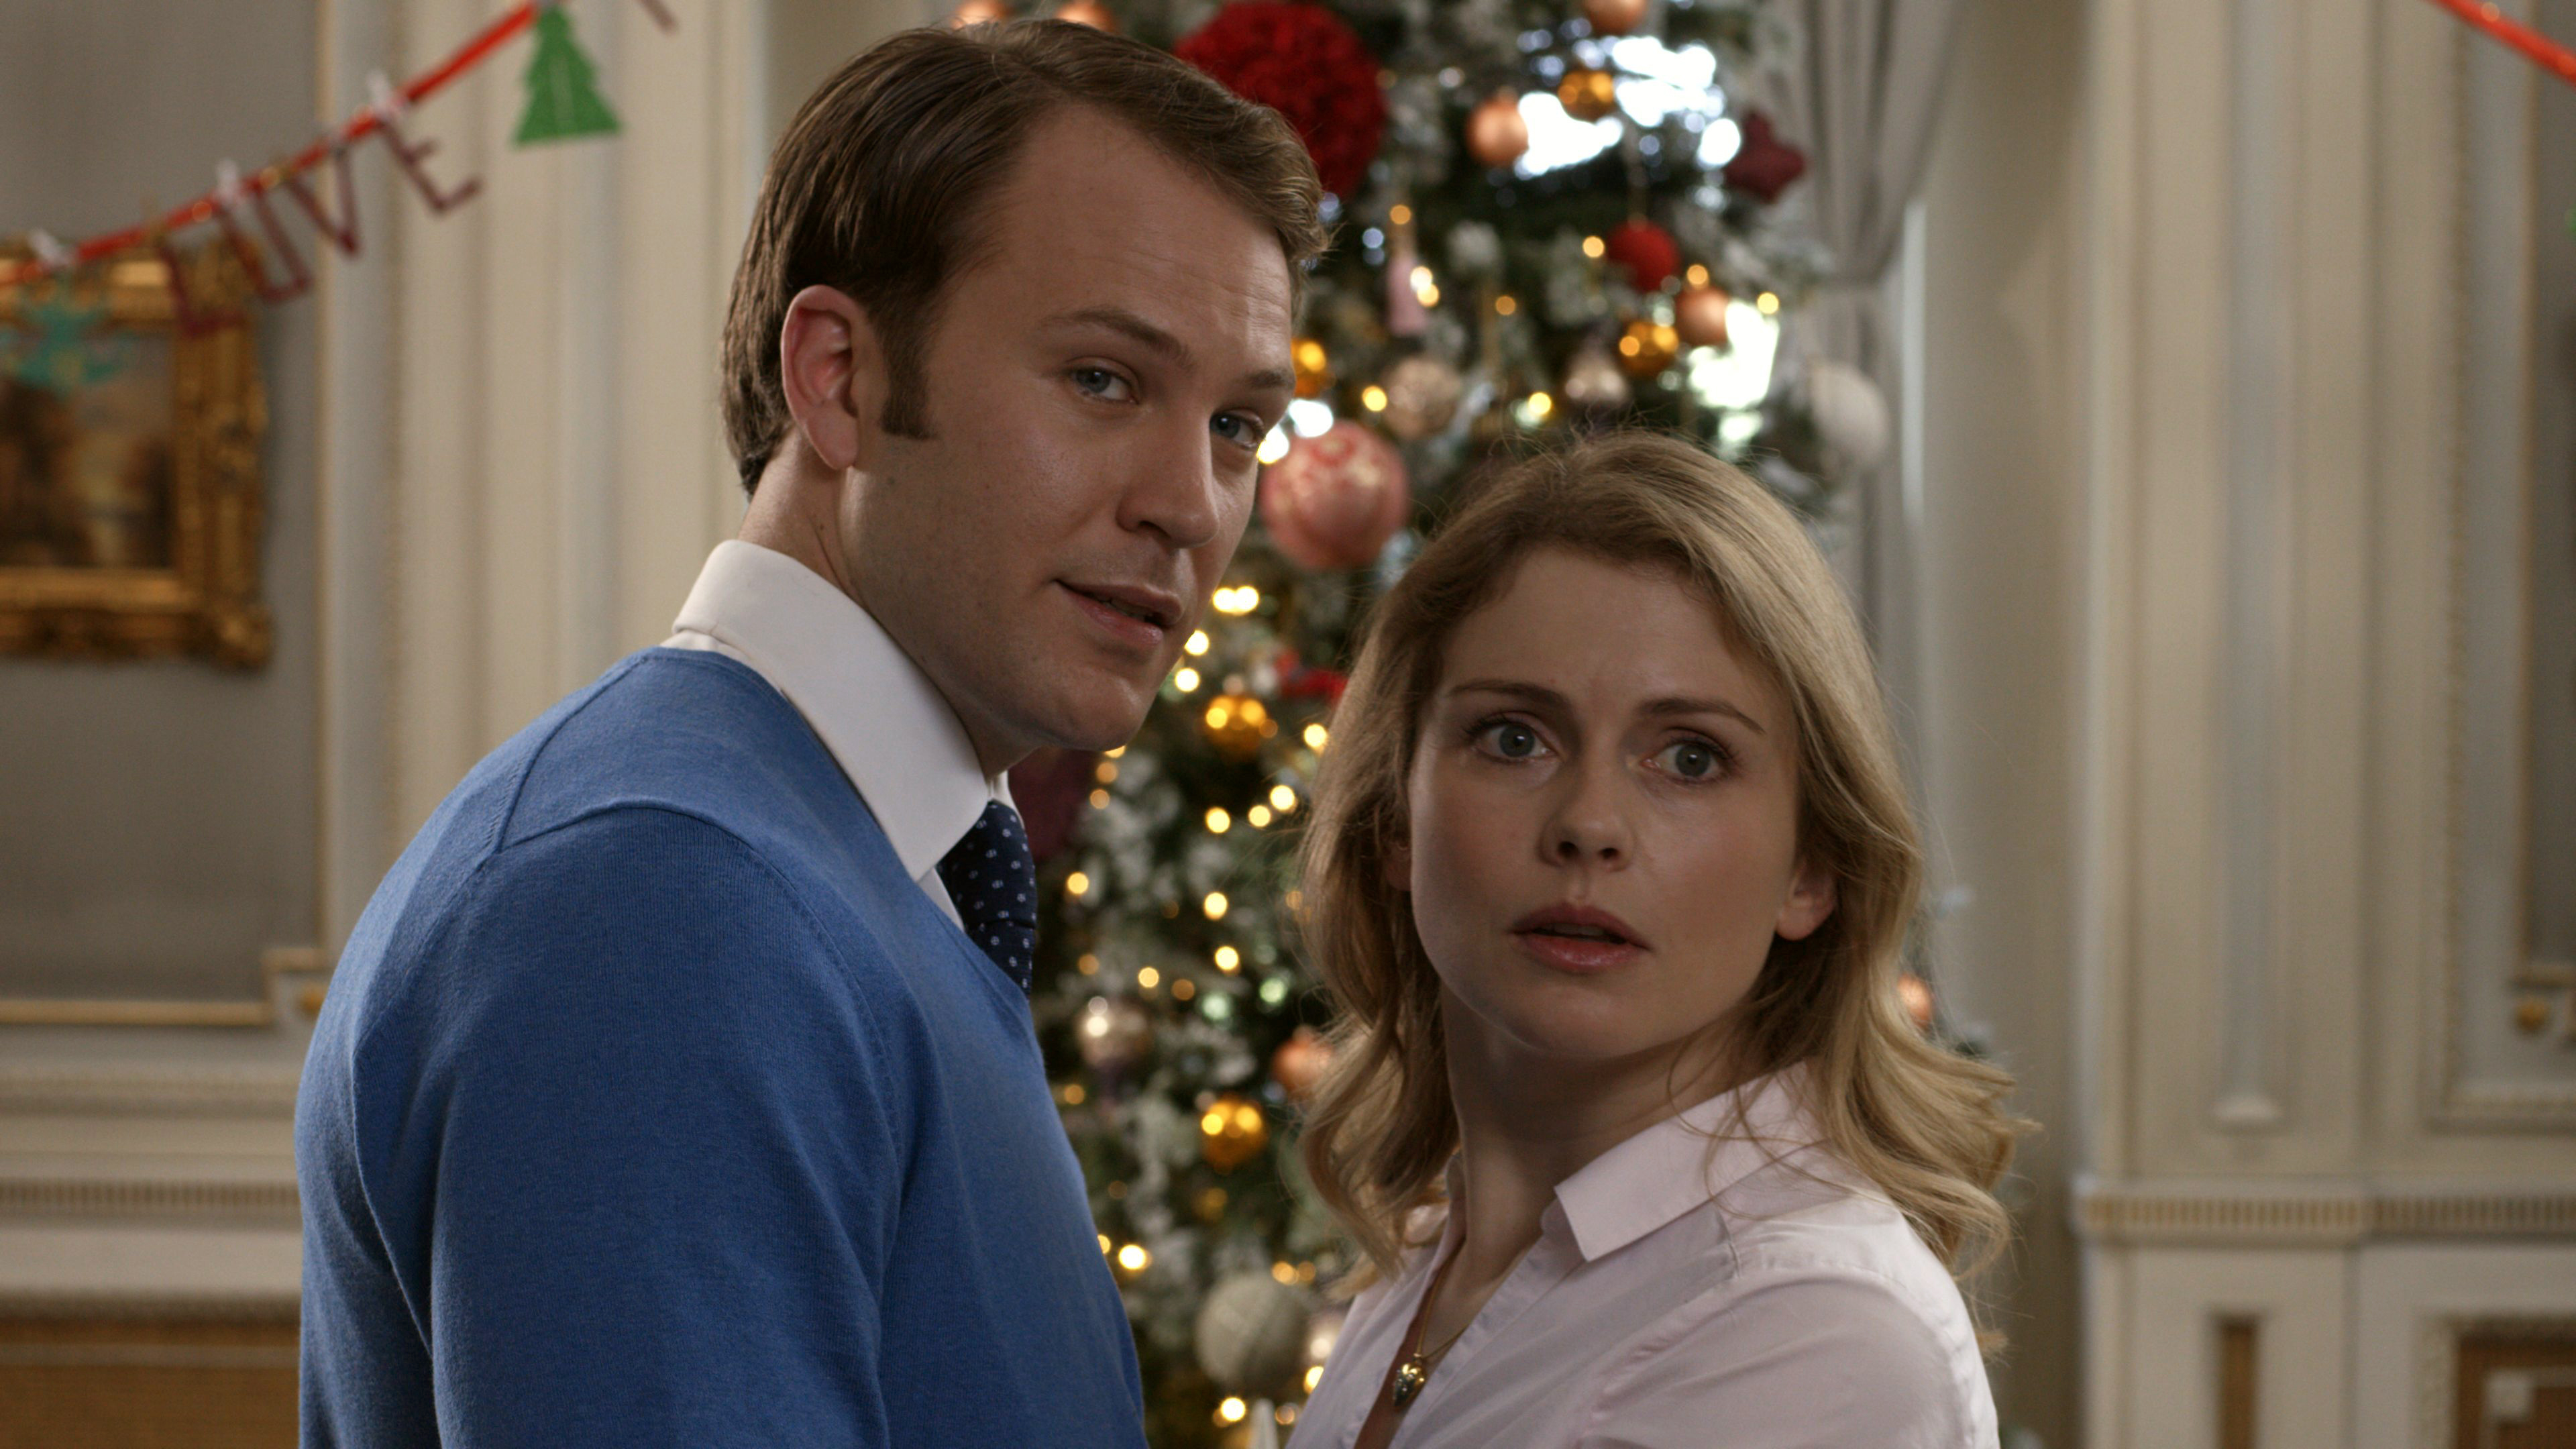 A Christmas Story Sequel.The Trailer For The Sequel To A Christmas Prince Is Here And It Is